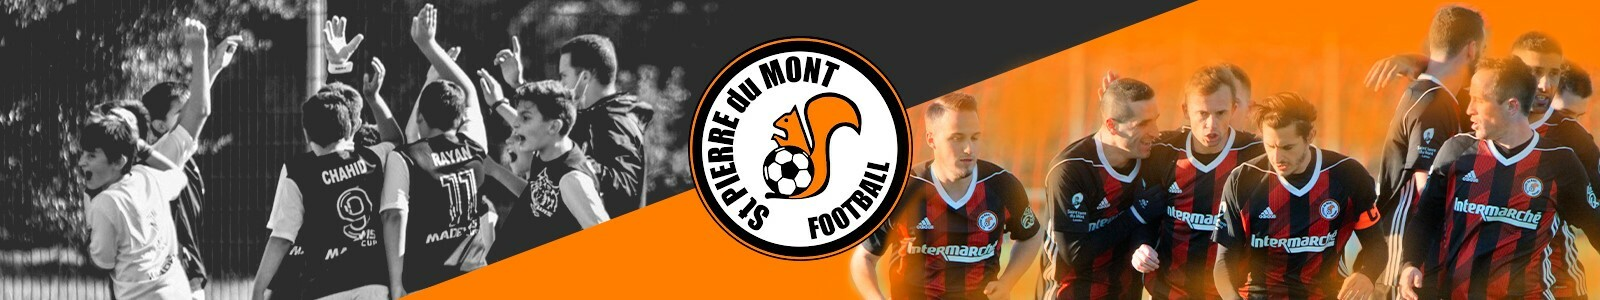 SPORTING CLUB SAINT PIERRE DU MONT FOOTBALL : site officiel du club de foot de ST PIERRE DU MONT - footeo